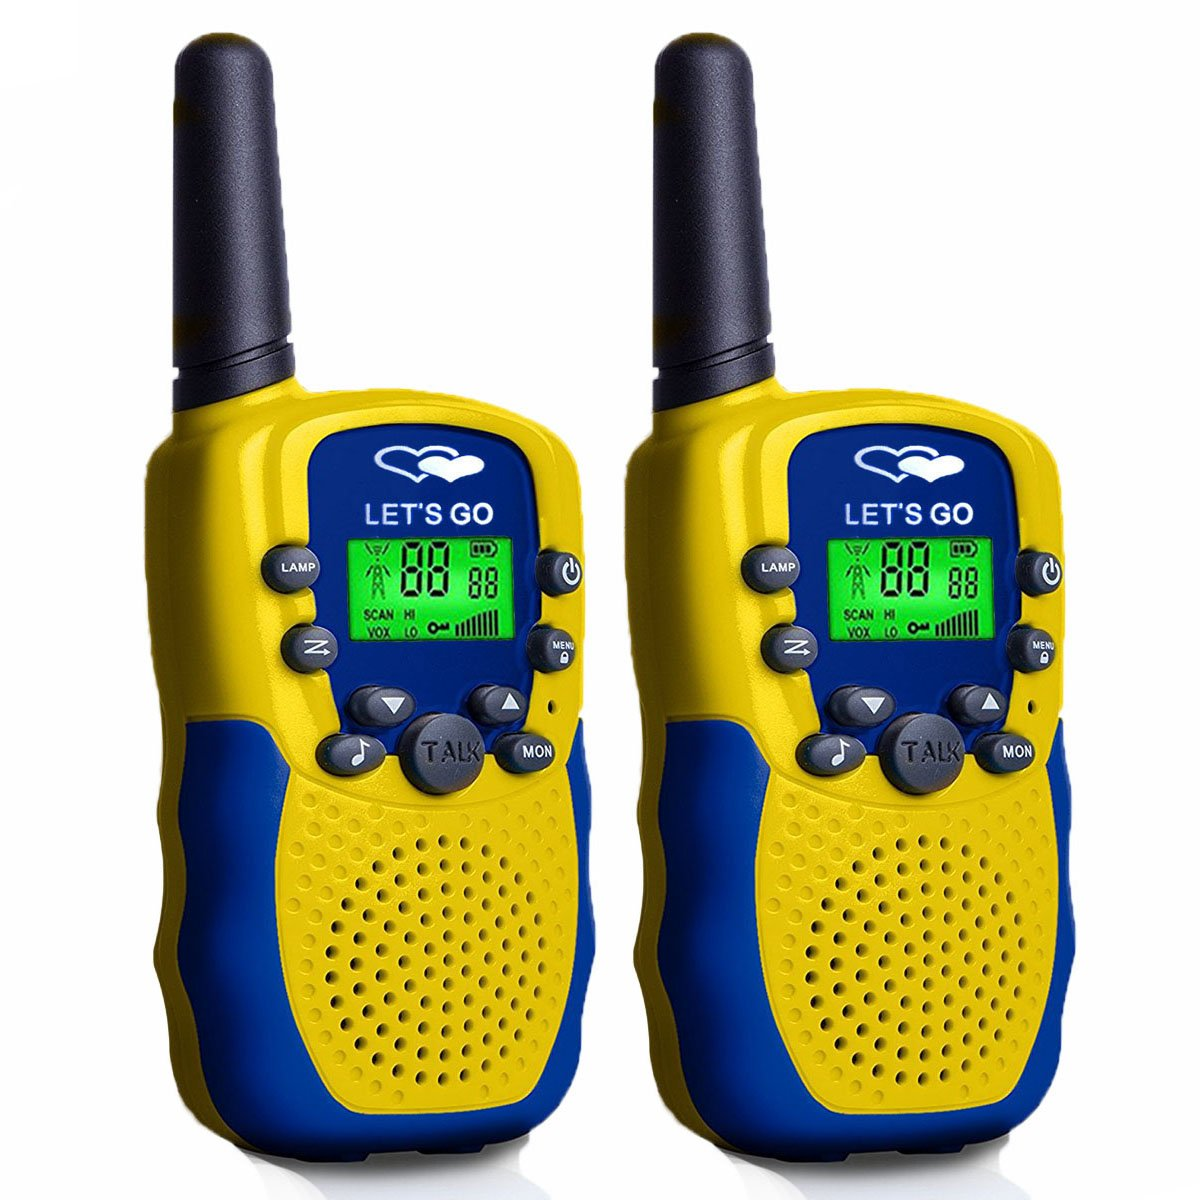 Tisy Outdoor Hunting Sporting Toys for 3-12 Year Old Boys, Walkie Talkies for Kids Toys for 3-12 Year Old Girls Birthday Presents Gifts for 3-12 Year Old Boys Girls TSUSDJT09